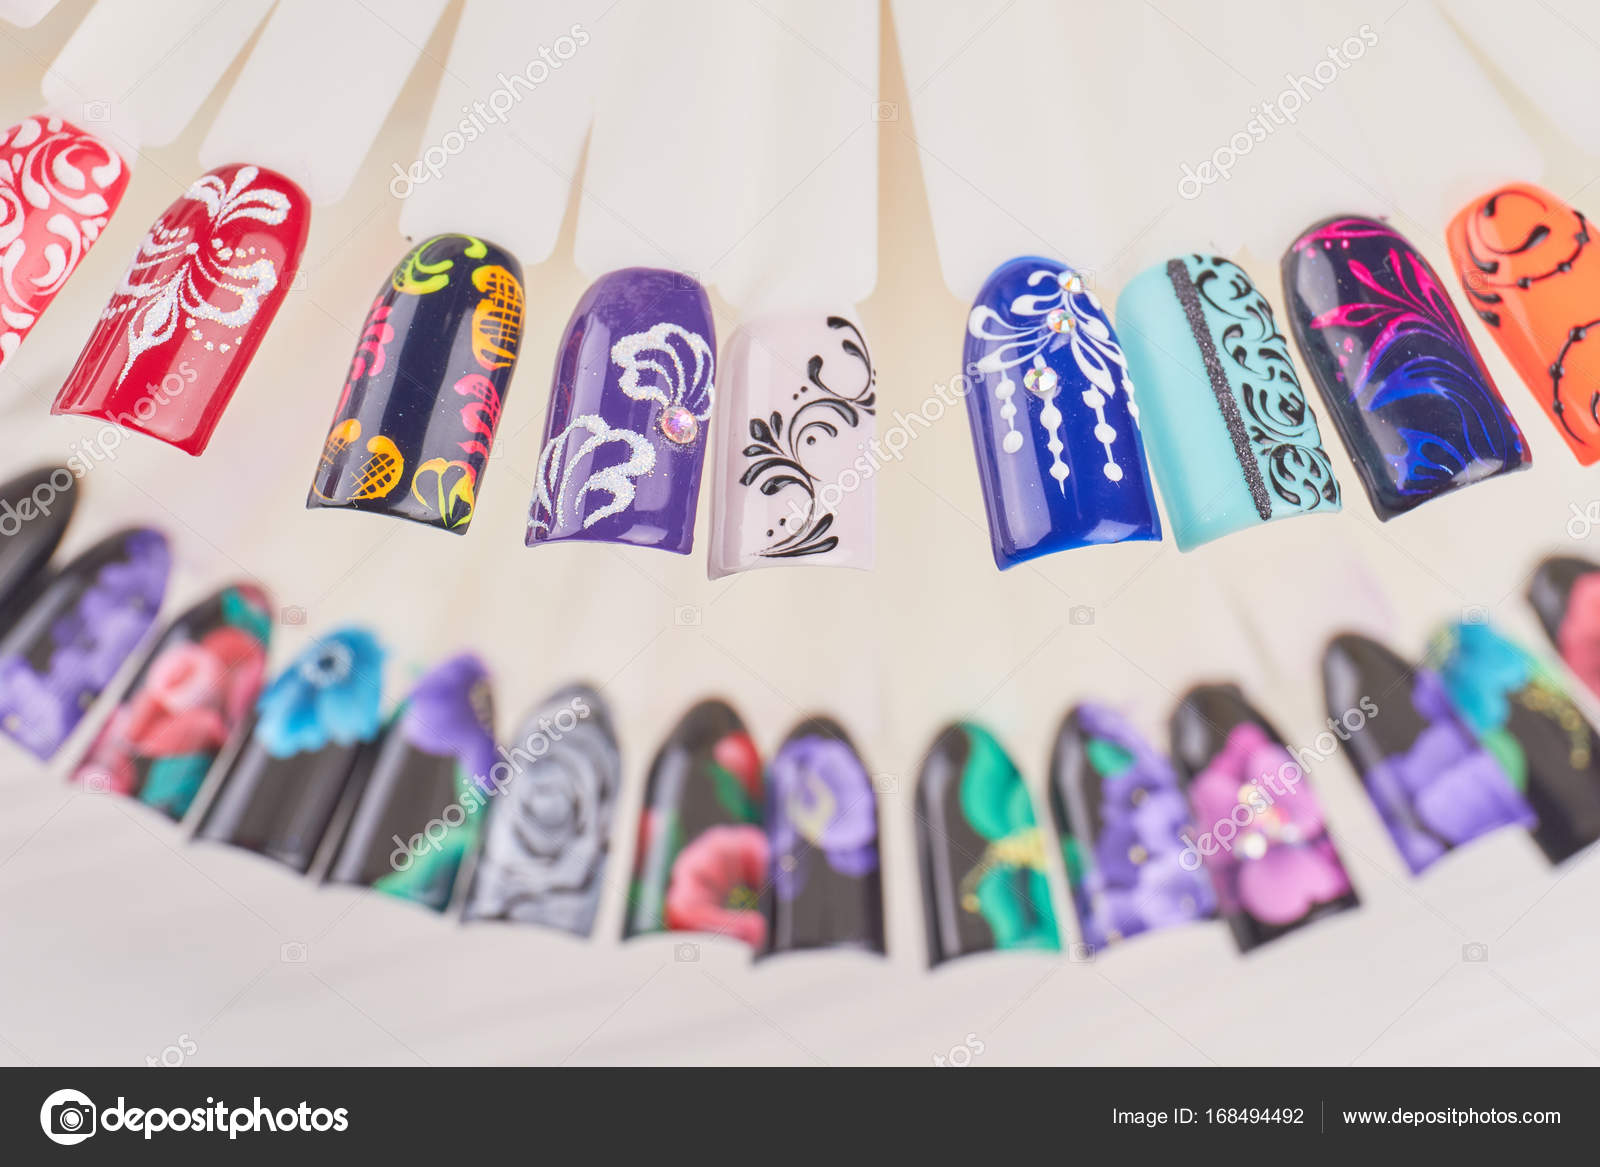 Finger Nagel-Kunst-Design-Muster — Stockfoto © Denisfilm #168494492